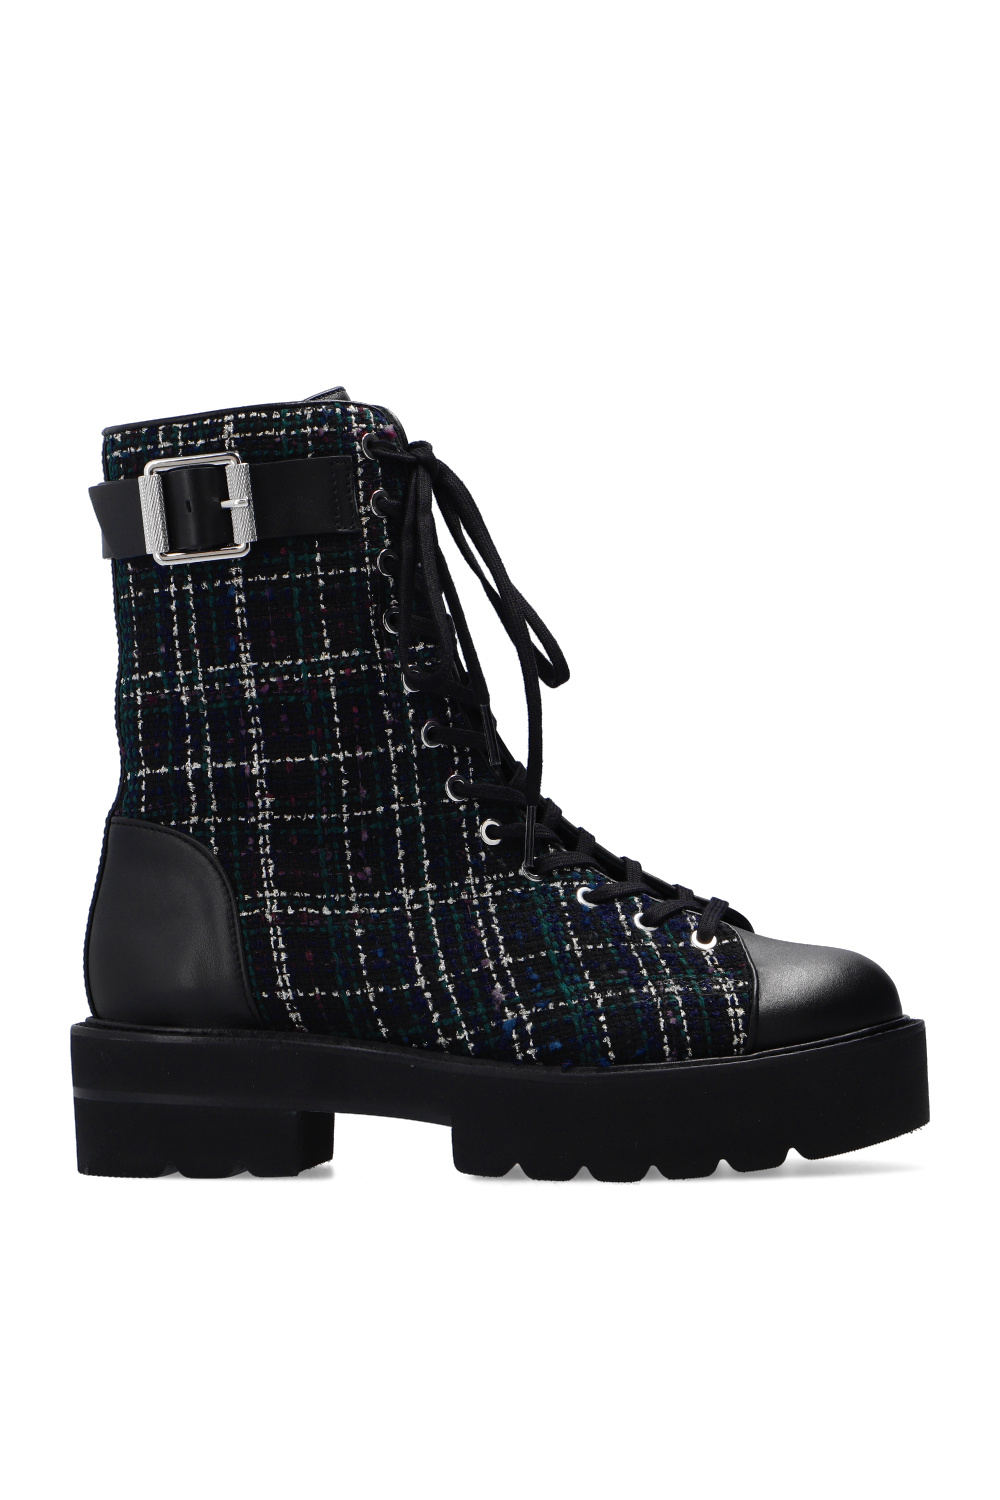 Stuart Weitzman 'Ryder Ultralift' lace-up ankle boots